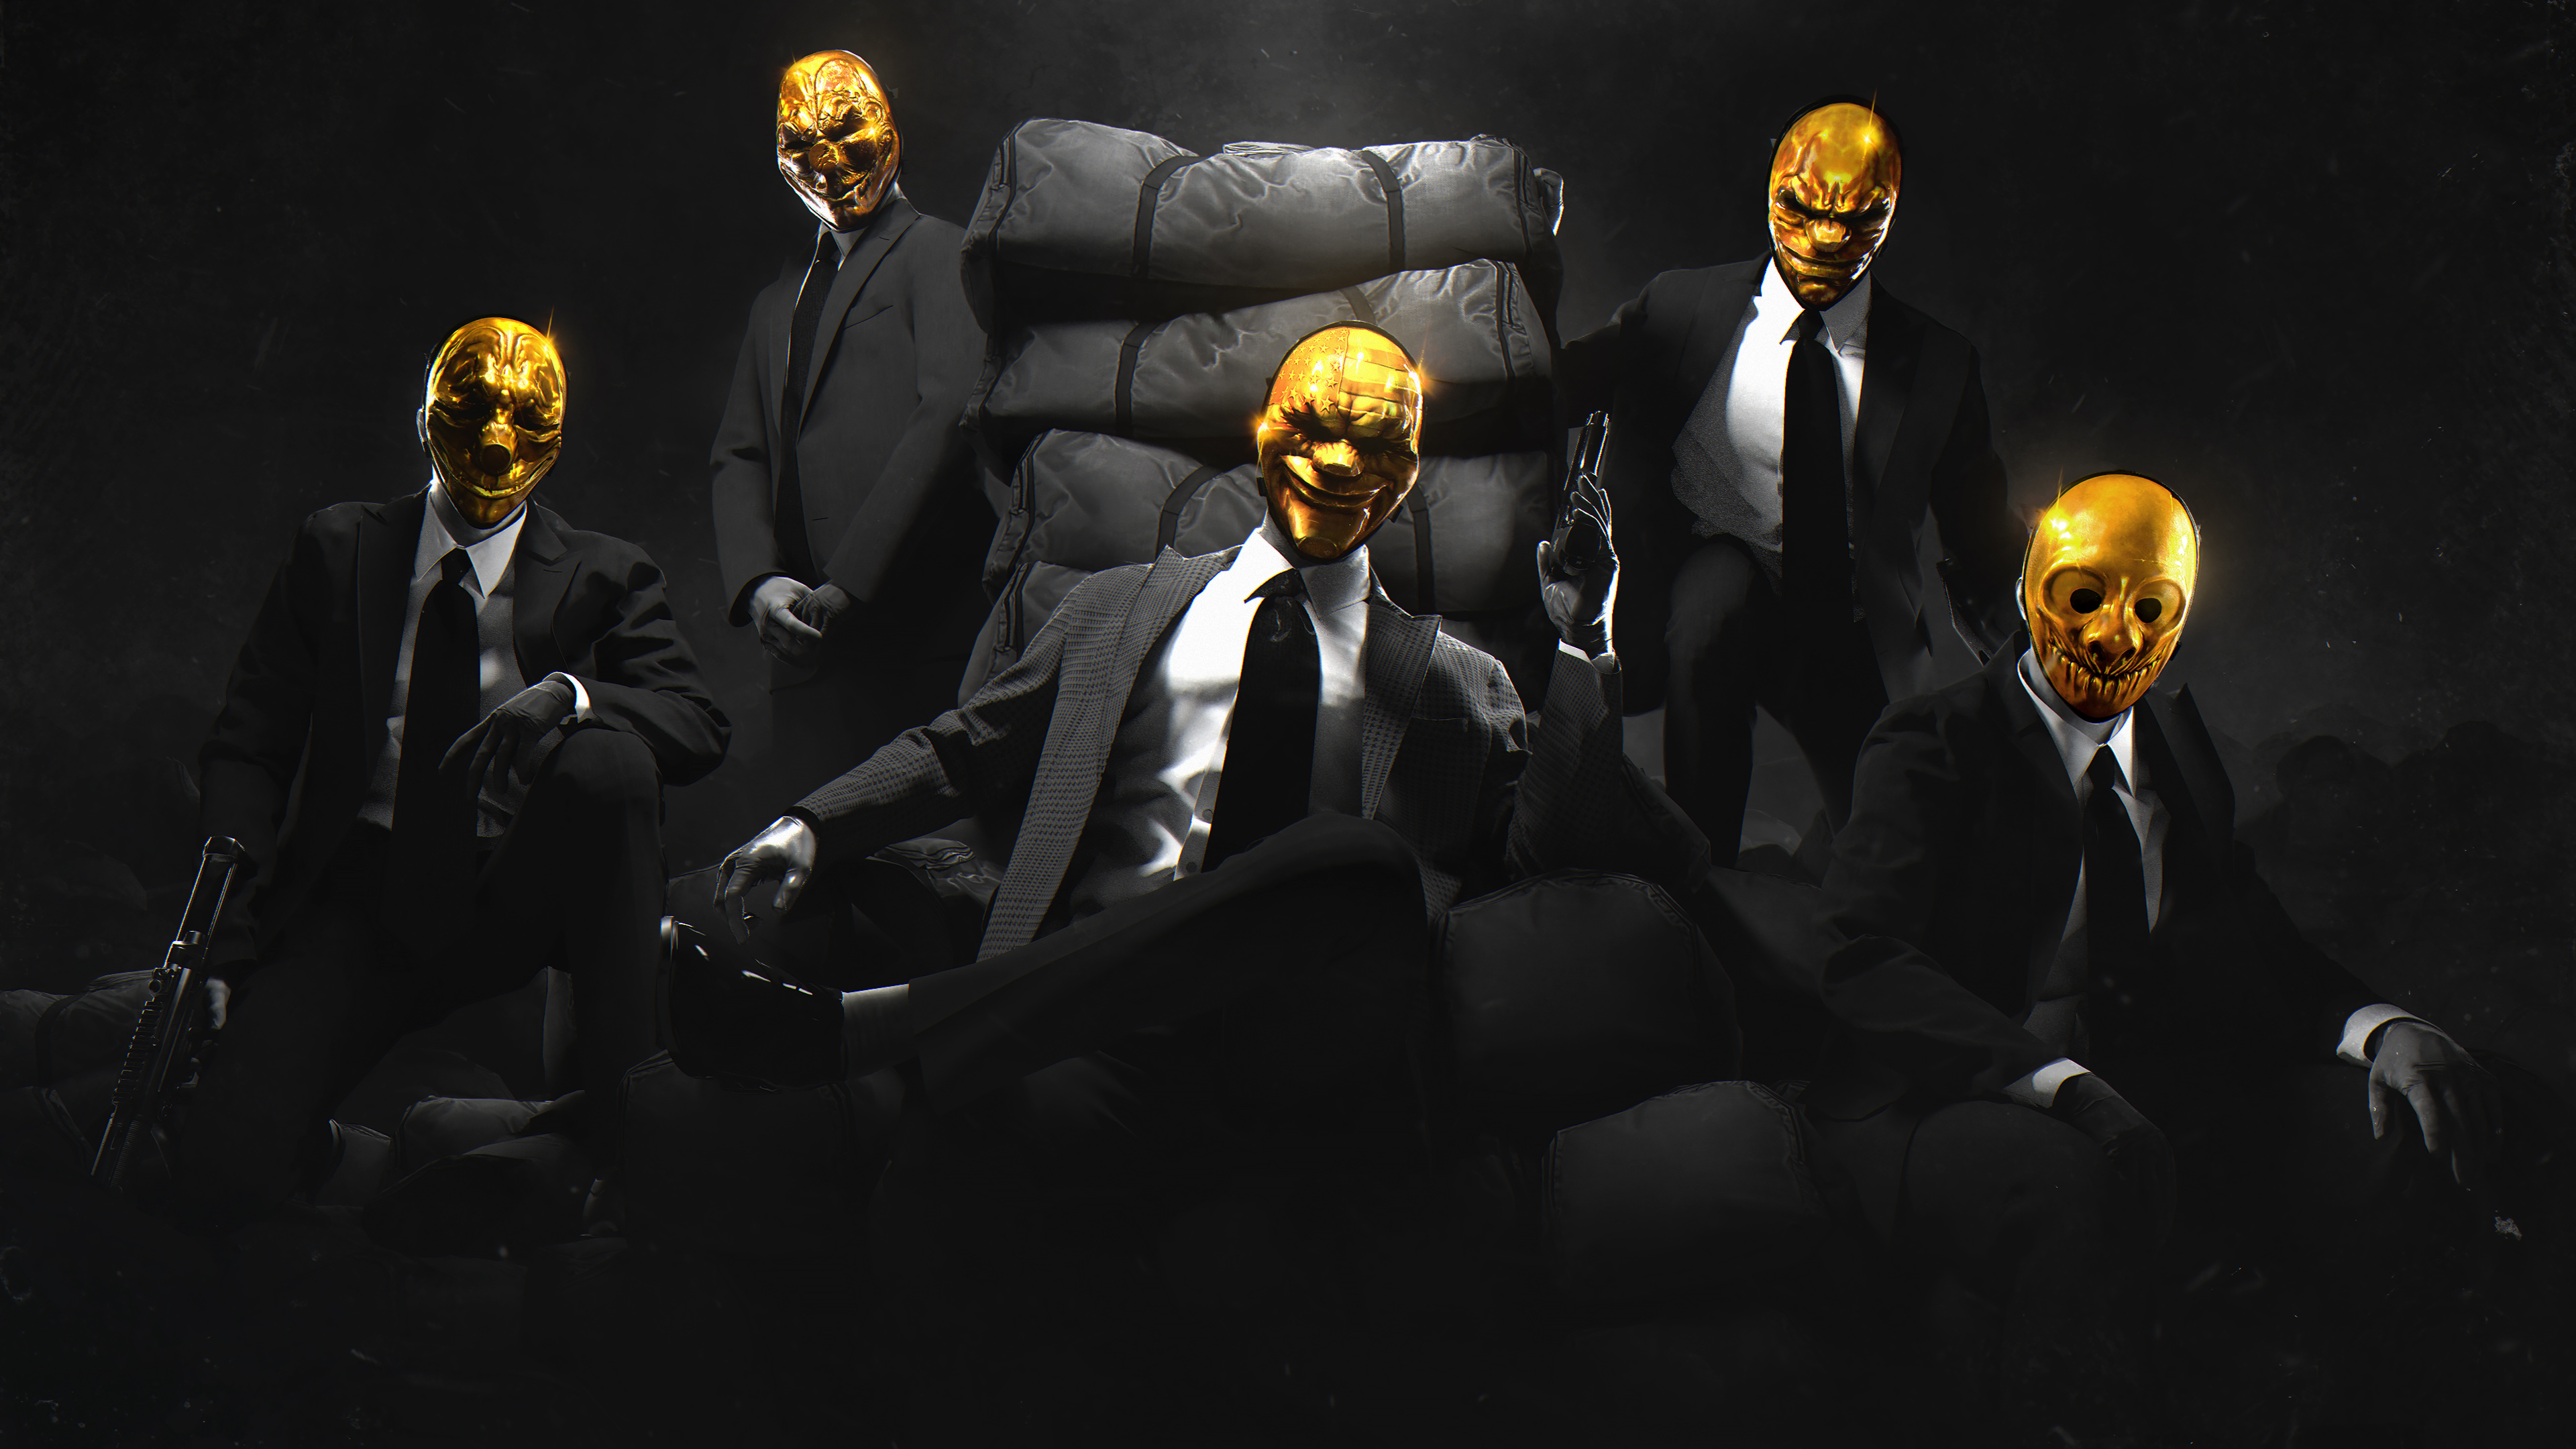 Payday Gold Crew Hd Games 4k Wallpapers Images